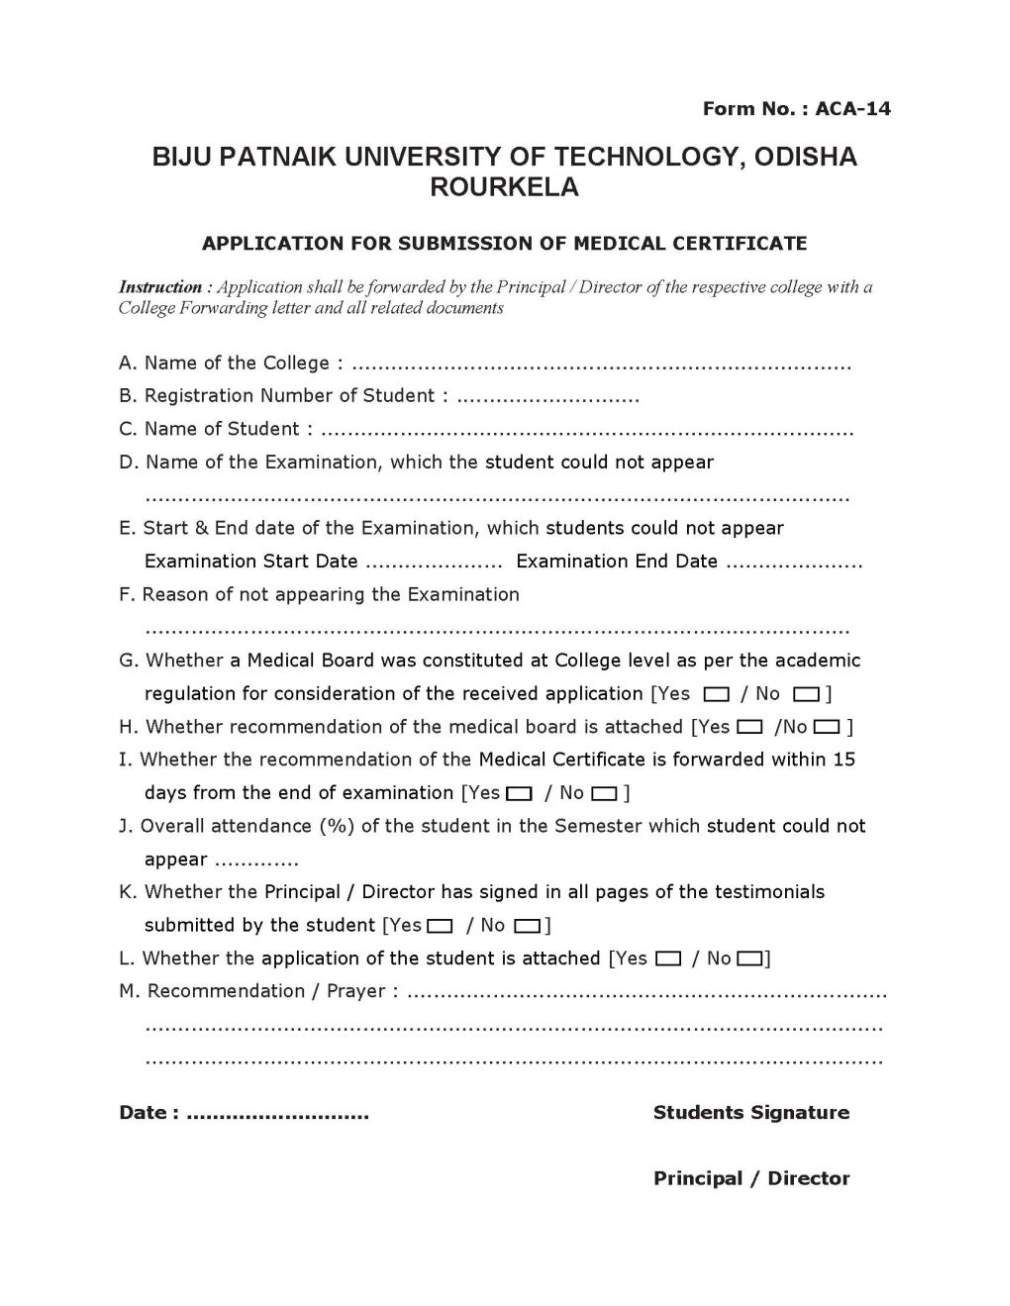 BPUT Medical Certificate - 2018 2019 Student Forum